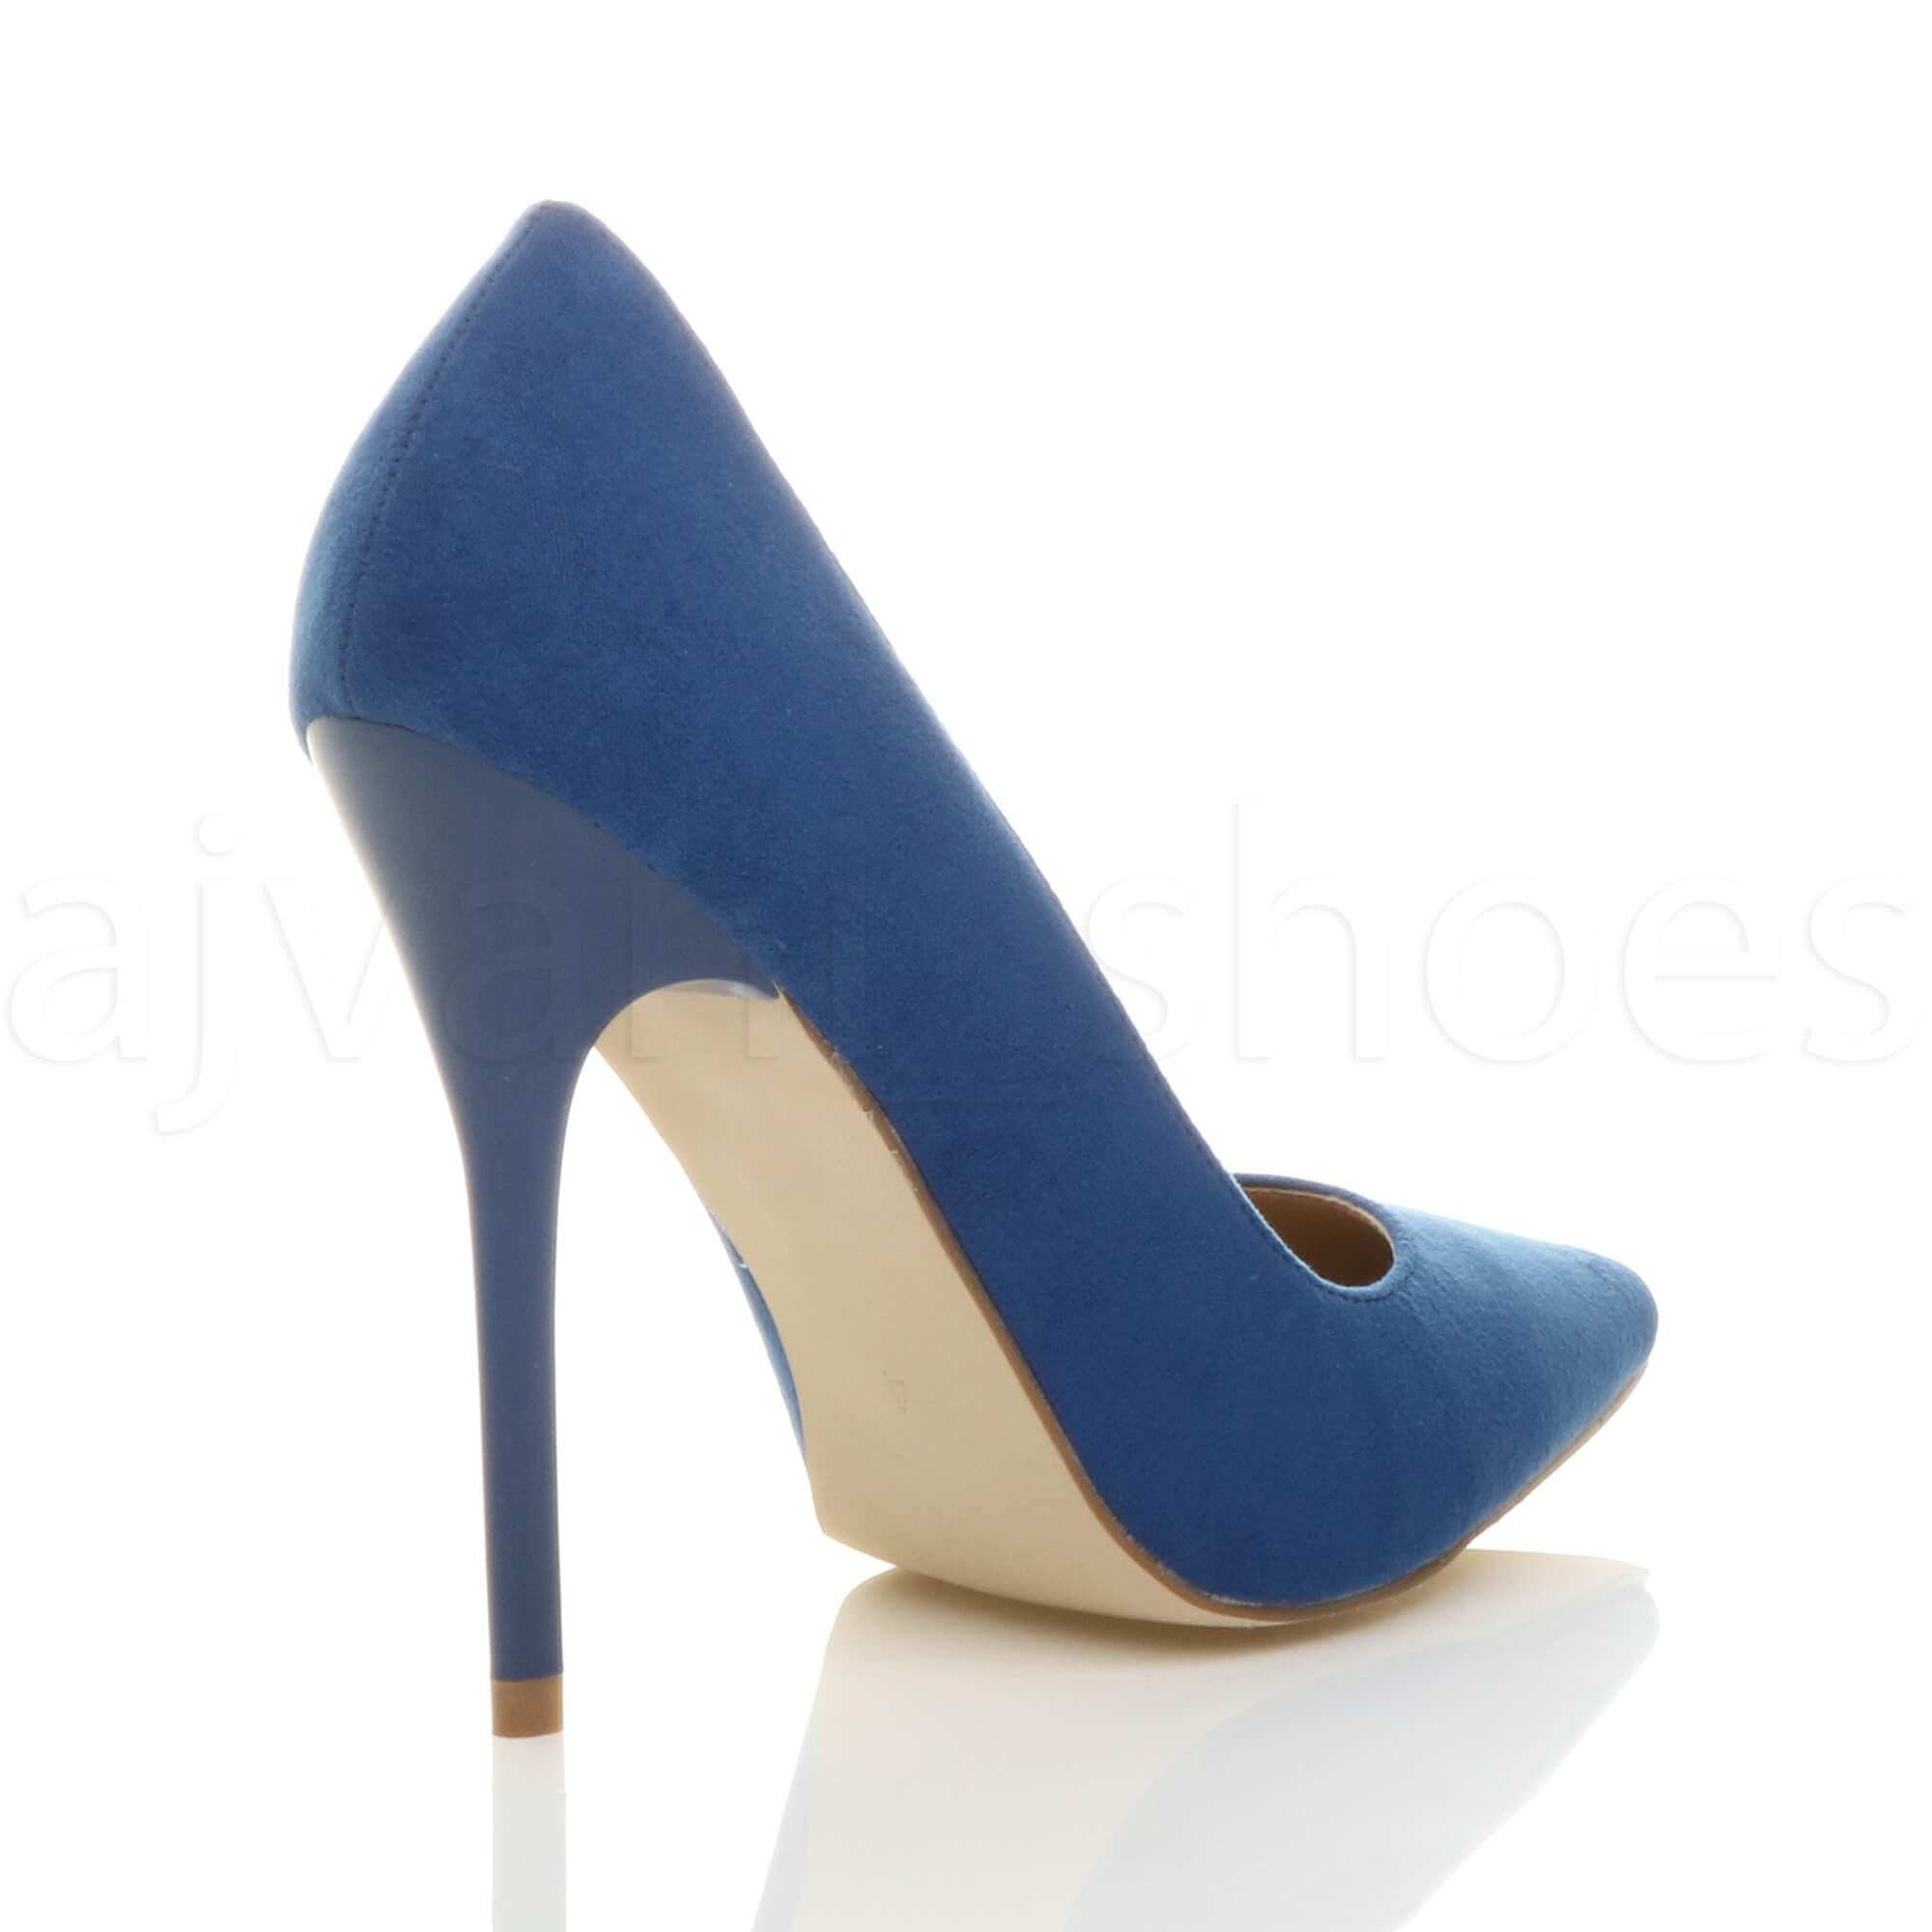 WOMENS-LADIES-HIGH-HEEL-POINTED-CONTRAST-COURT-SMART-PARTY-WORK-SHOES-PUMPS-SIZE thumbnail 53